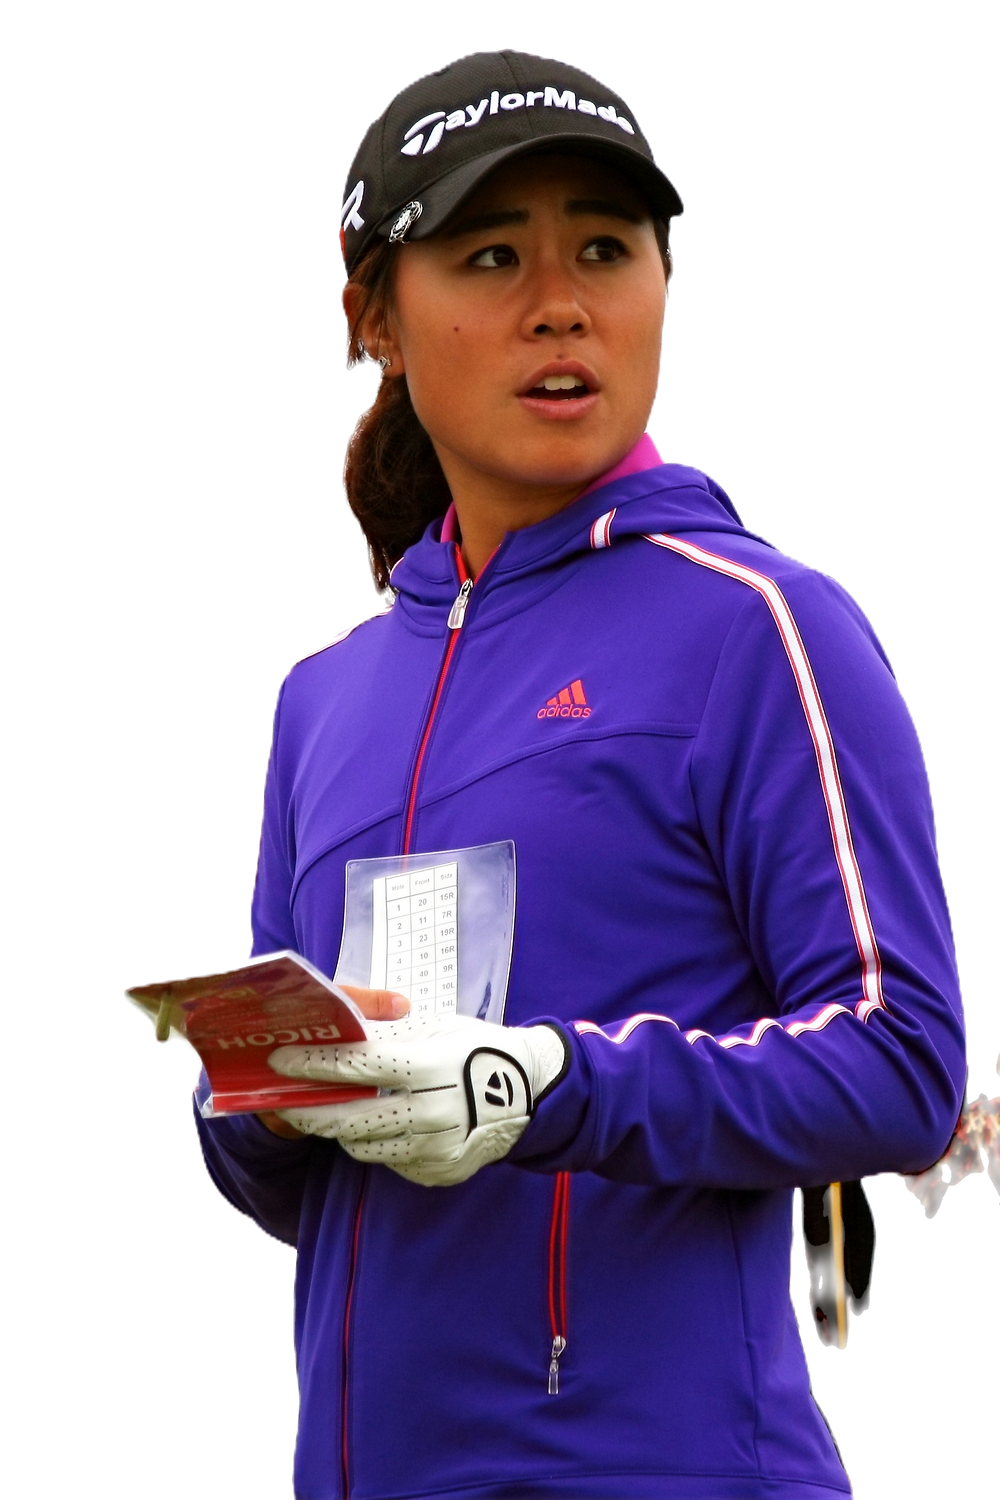 Seeking another major victory -- Danielle Kang looks ready to go.